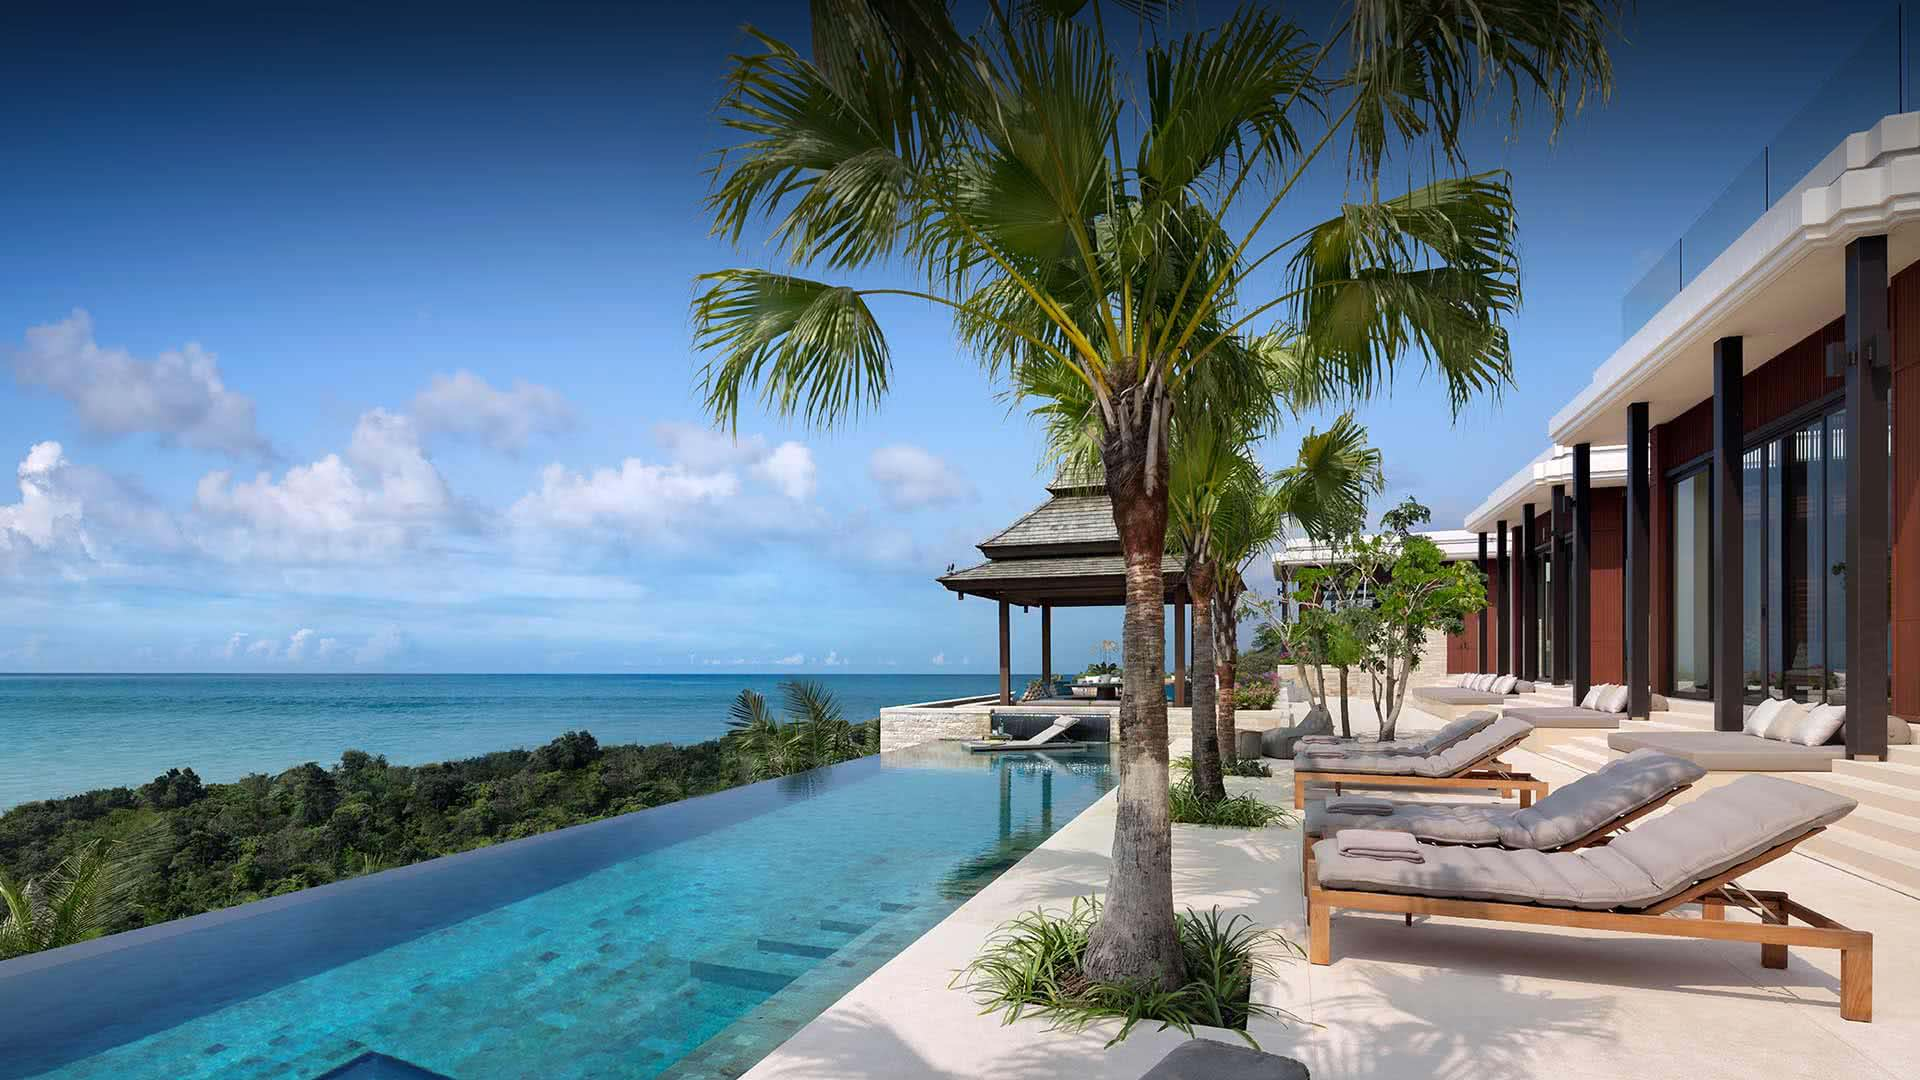 https://assets.anantara.com/image/upload/q_auto,f_auto/media/minor/anantara/images/layan-residences-by-anantara/the-resort/layanresidences_theresort_header_1920x1080.jpg